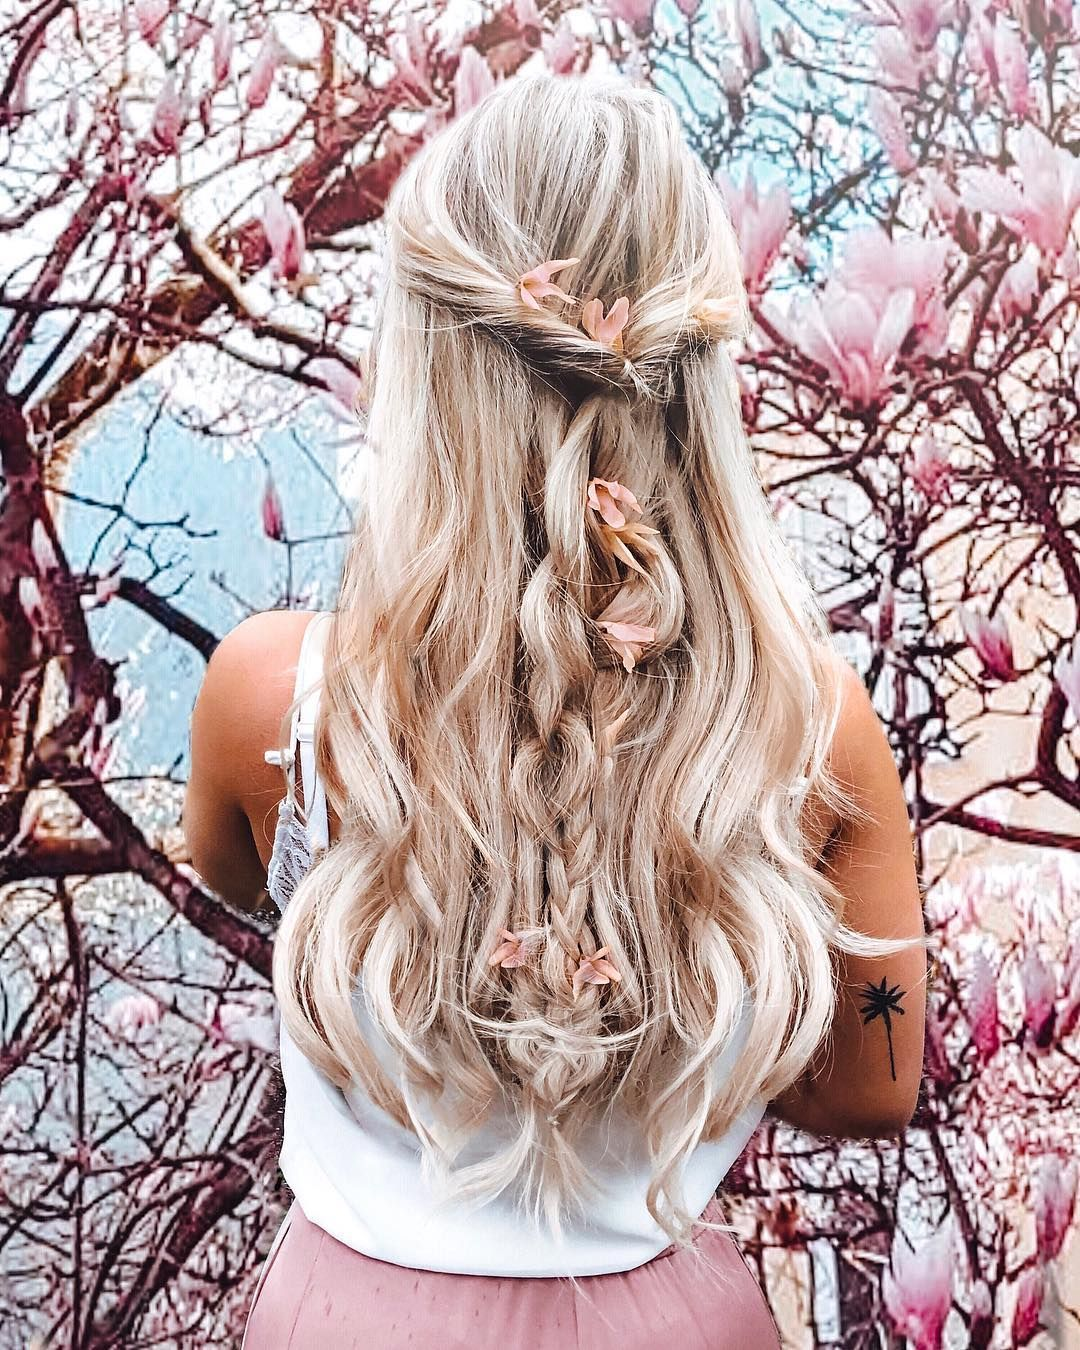 Hello Spring I really feel like my jackets in the cellar to grab friends …-#flowers #girl #girlsstruggle #hairstyle #hellospring #inspo #longhair #lovely #magnolia #Magnolien #nature #spring #springvibes